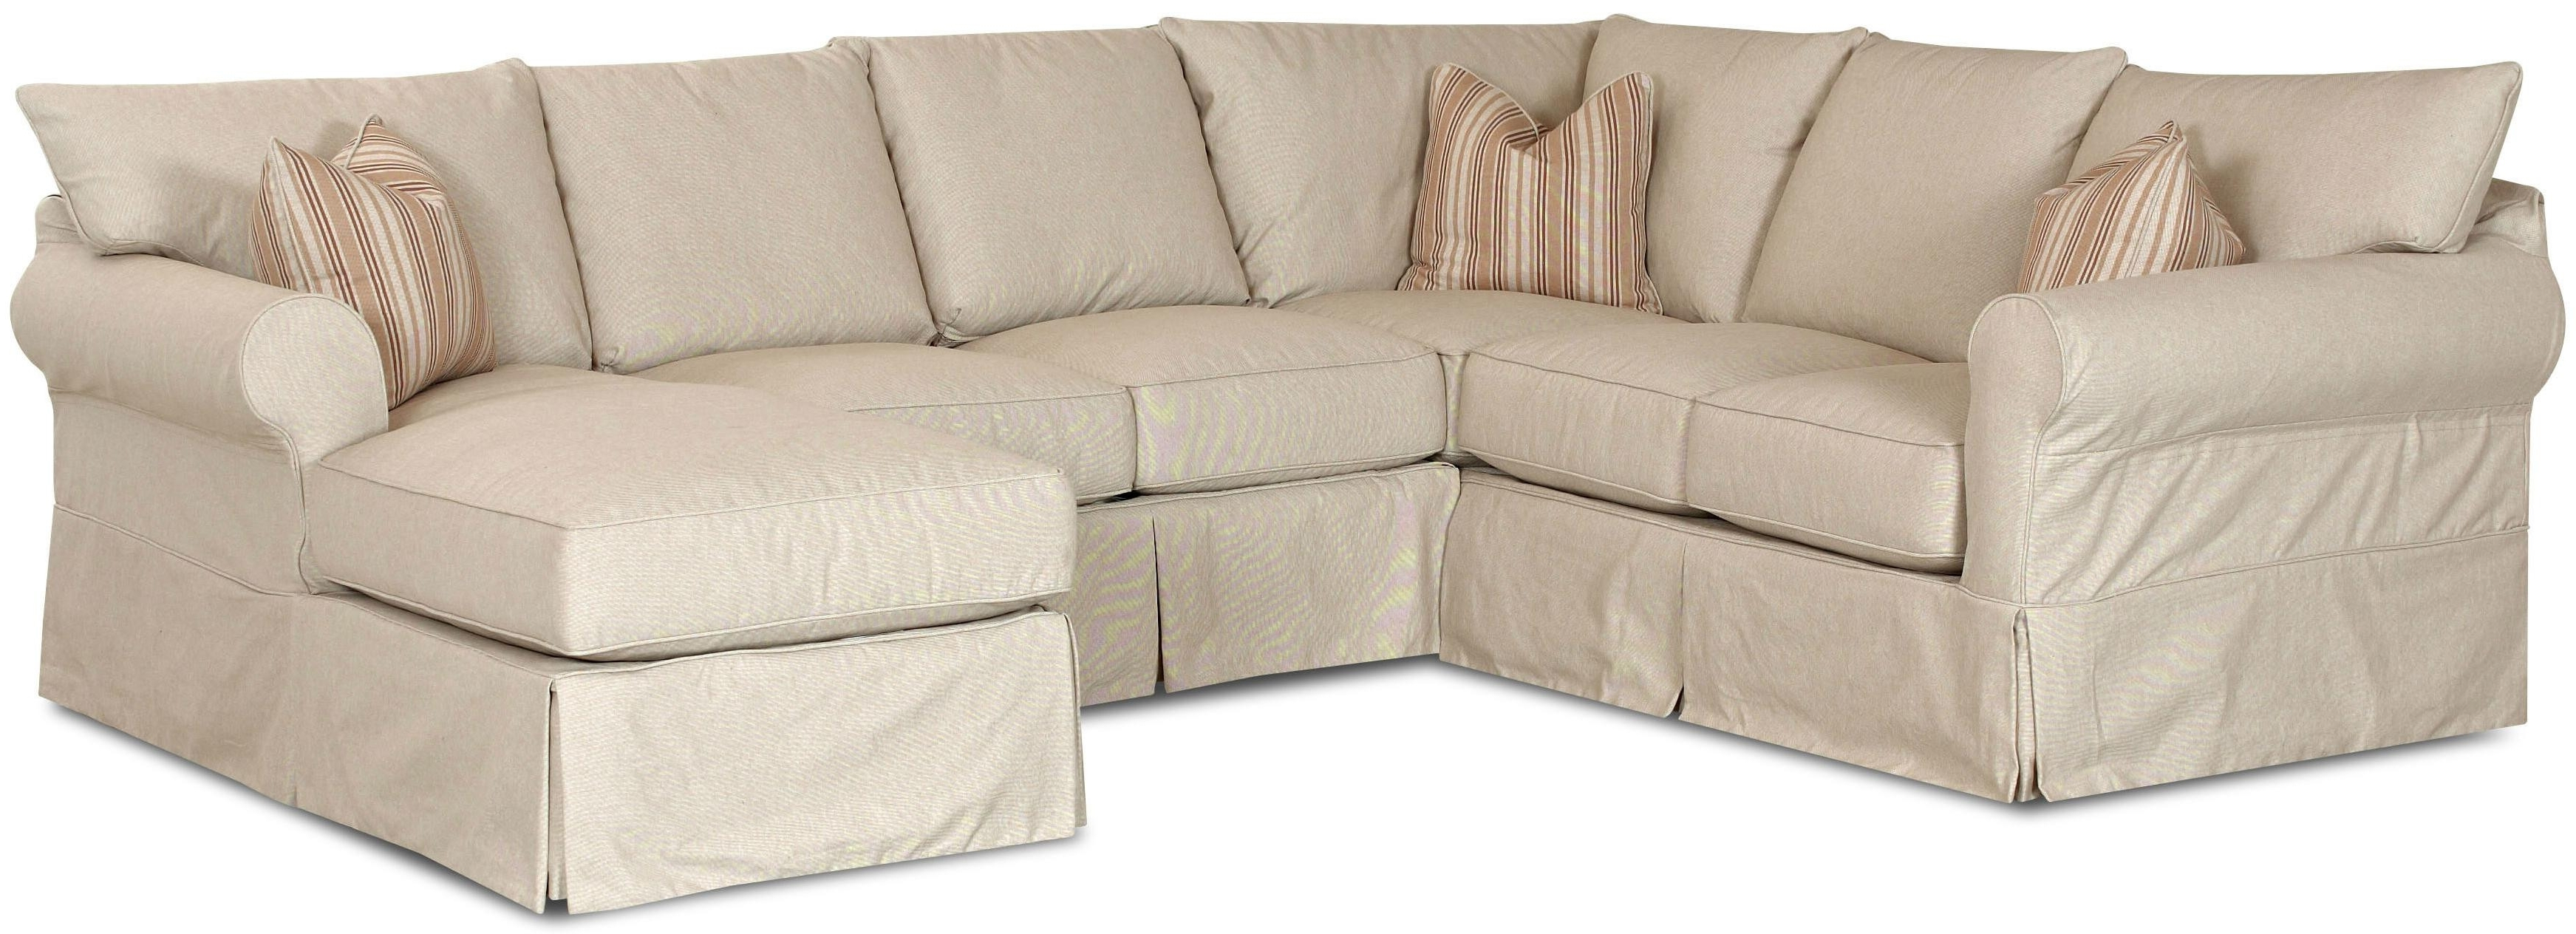 Most Popular Furniture : U Shaped Sectional Couch Covers Luxury Slip Cover Pertaining To Chaise Couch Covers (View 8 of 15)